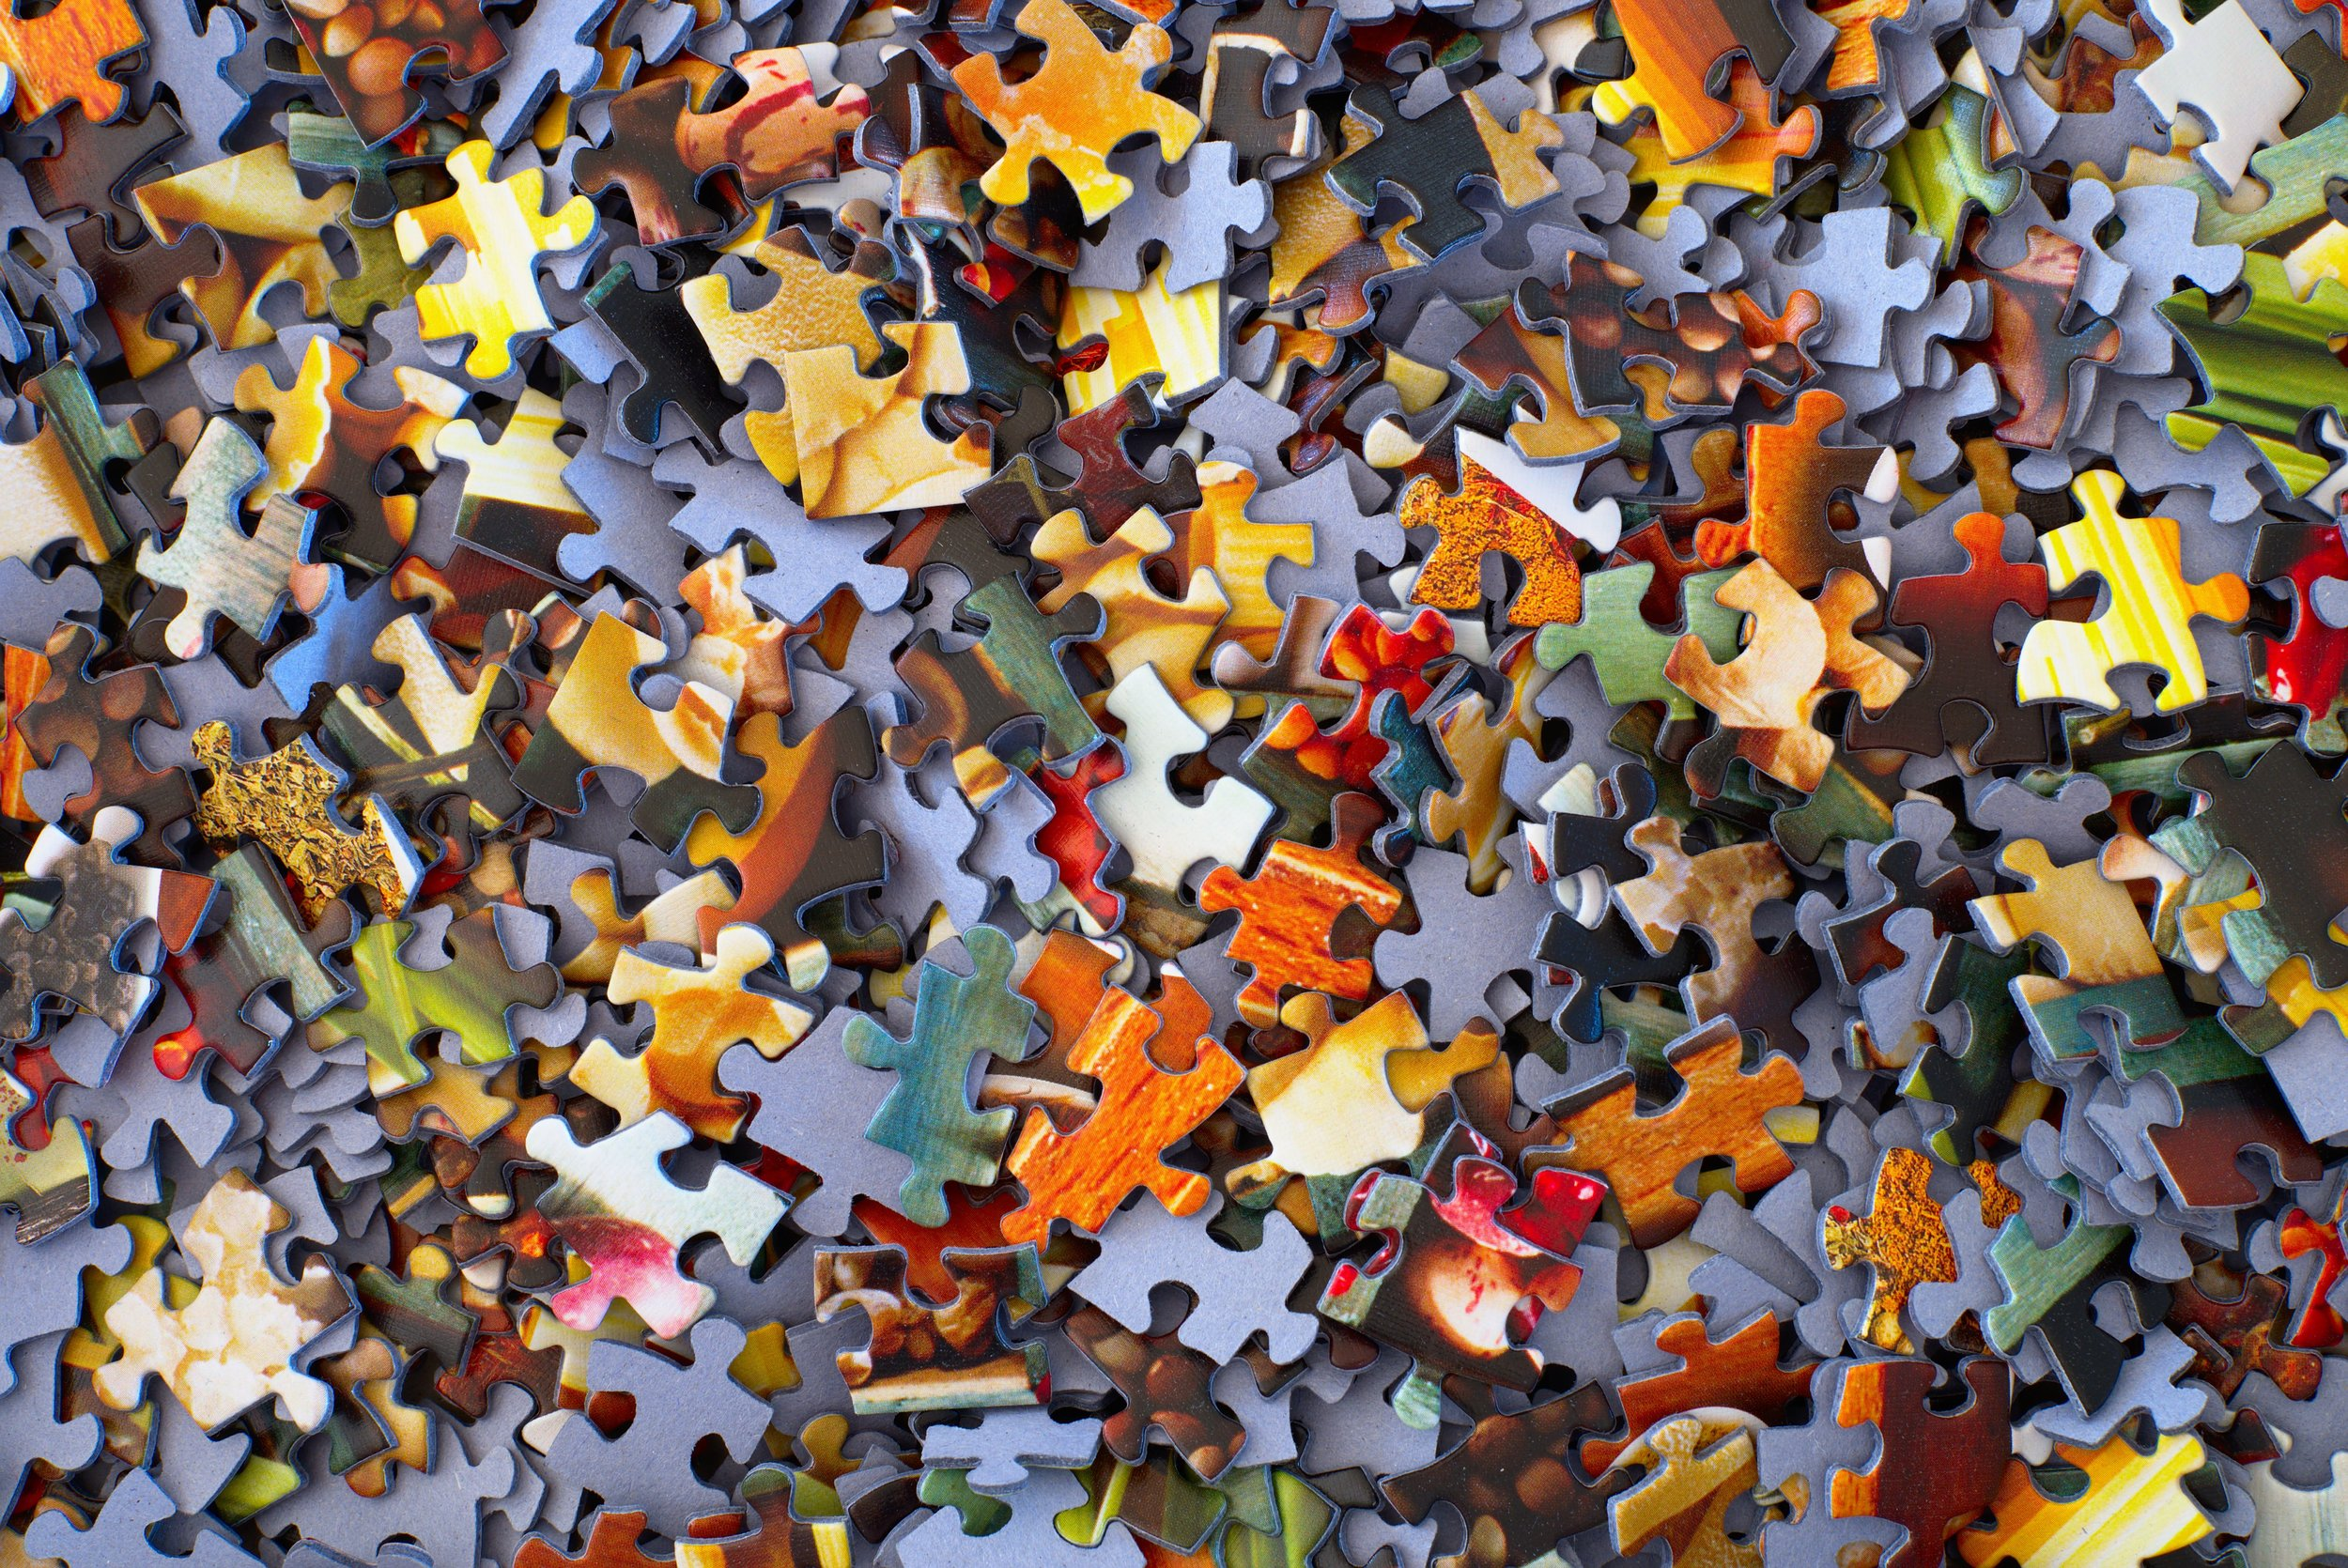 It's no puzzle, but there are pieces -